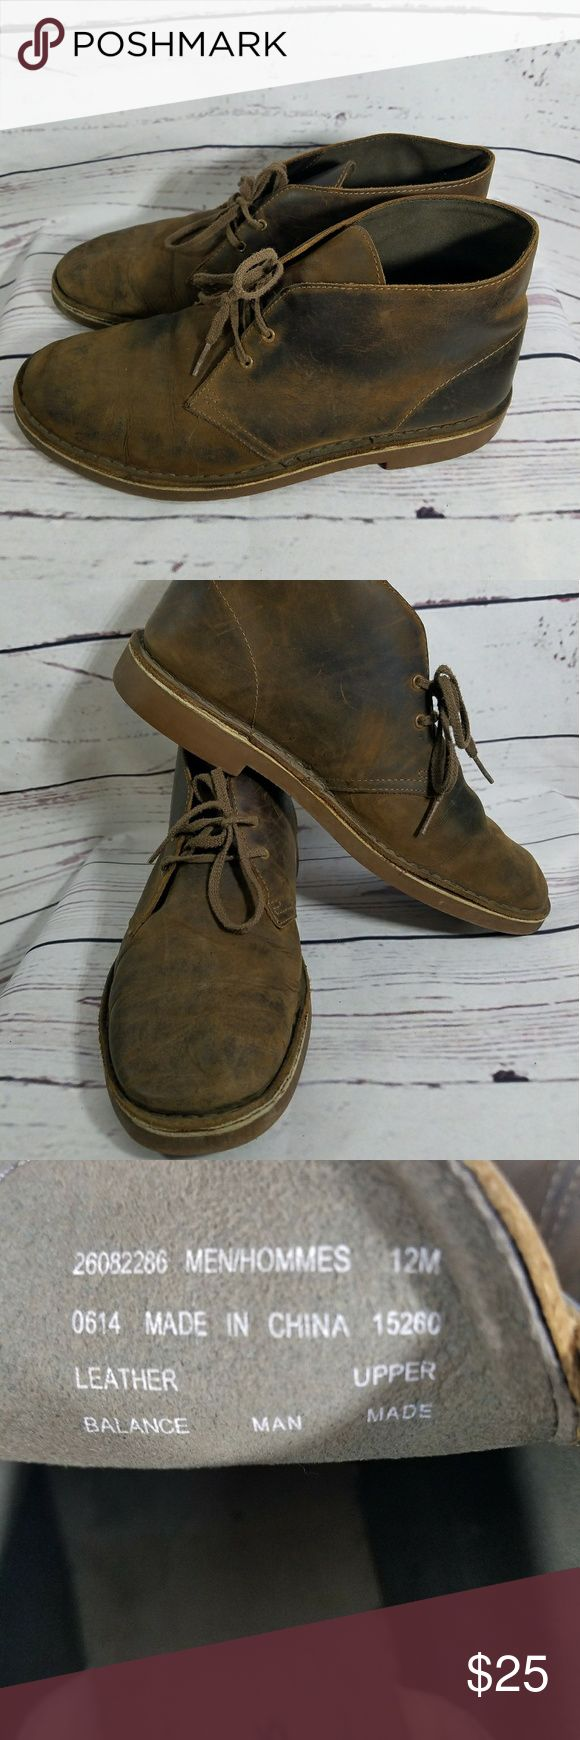 Mens Clarks Desert Boots Size 12 These are awesome looking desert boots. They have been loved. Great for summer as some edges are not sealed. They are completely sewn but not glued anymore in certain spots. This just means they probably are not waterproof. Still great shoes! The brand is Clarks  Size 12 Clarks Shoes Chukka Boots